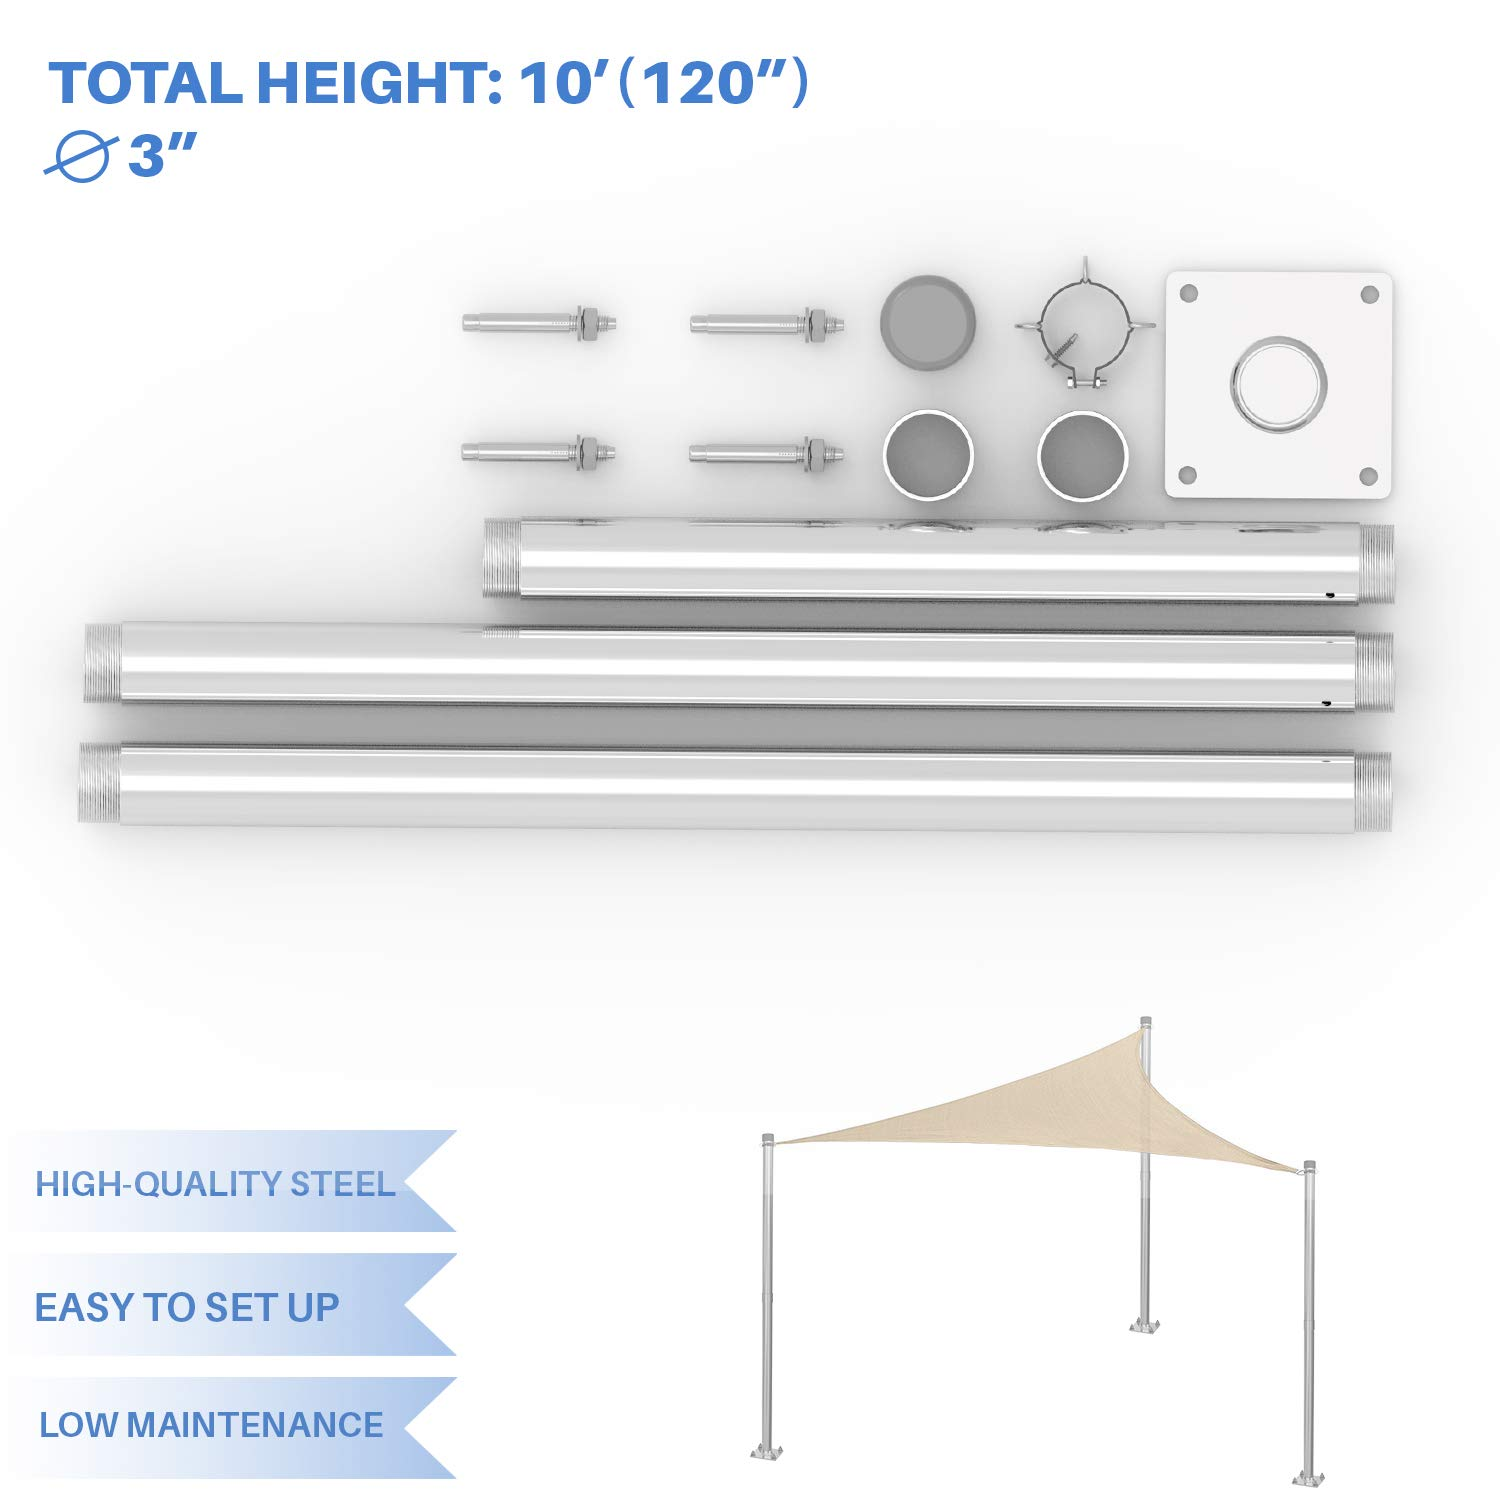 E&K Sunrise Sun Shade Sail Metal Pole Stand Post Heavy Duty Awning Canopy Support Poles φ3'' Fence Post Galvanized Steel Pole 10' Feet Tall (120'') by E&K Sunrise